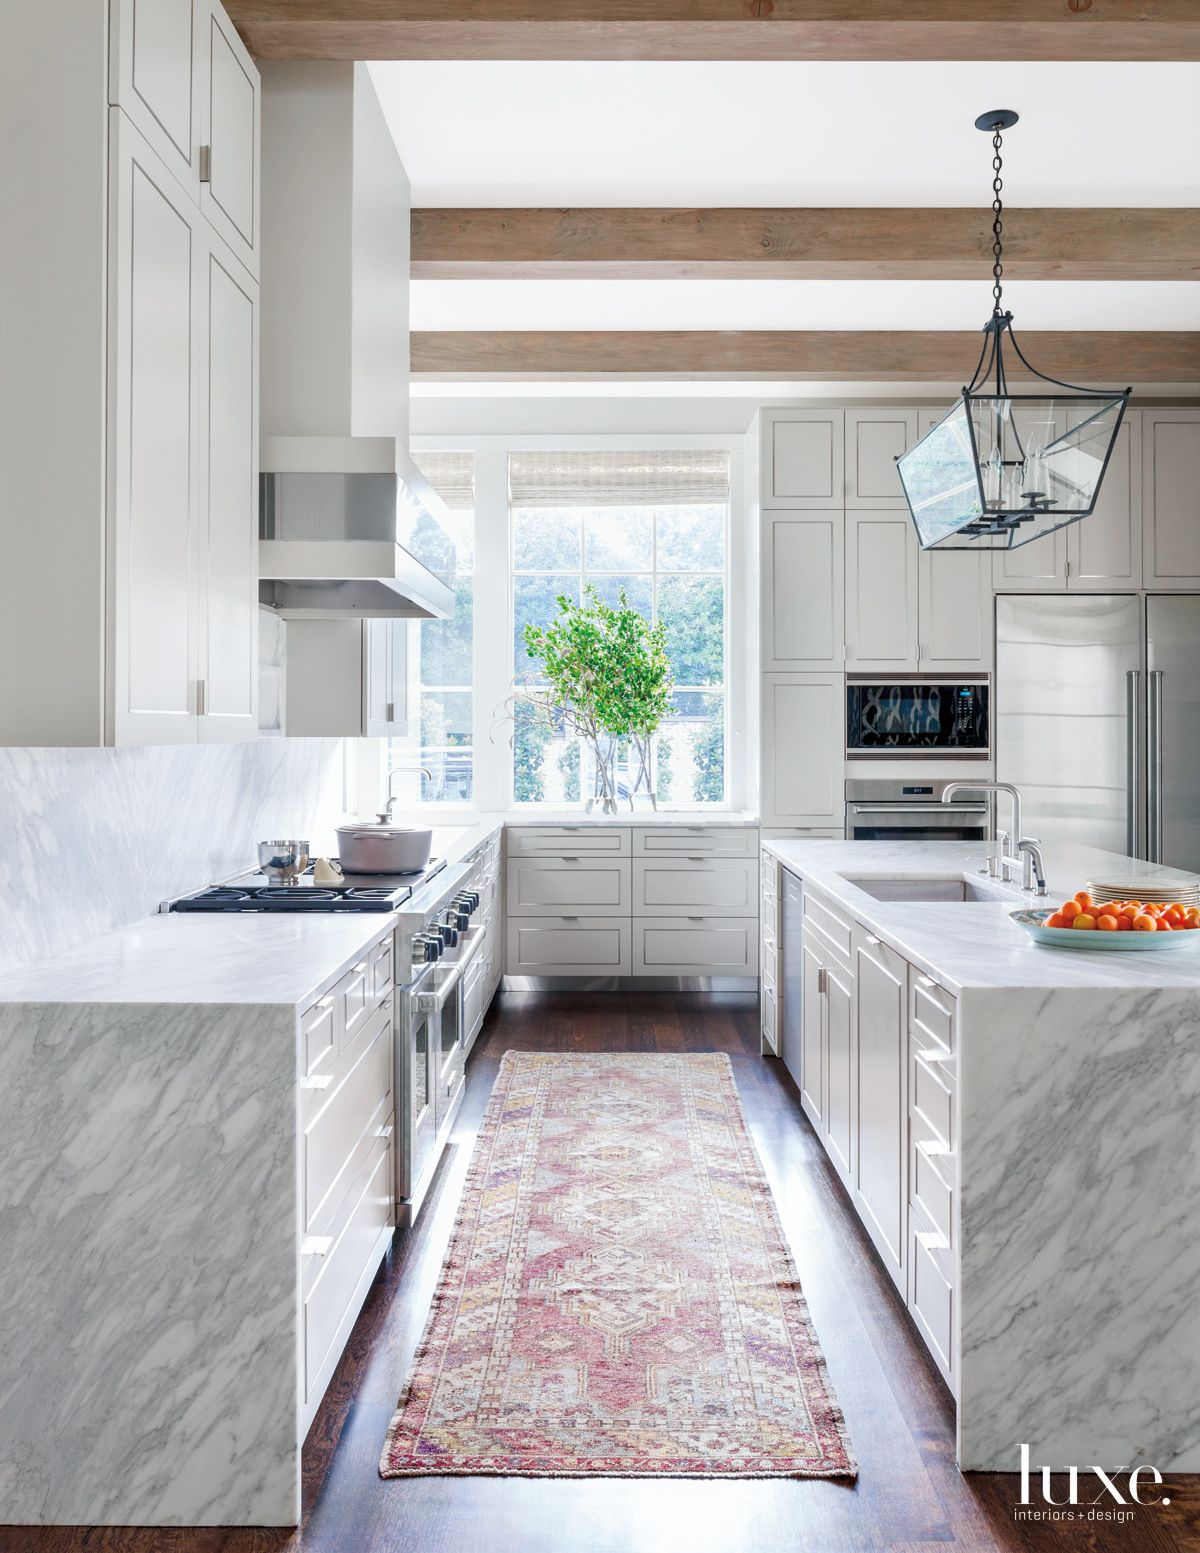 A transitional kitchen has a multi-colored Oushak rug to offset the more modern, white steel-inlaid cabinetry.